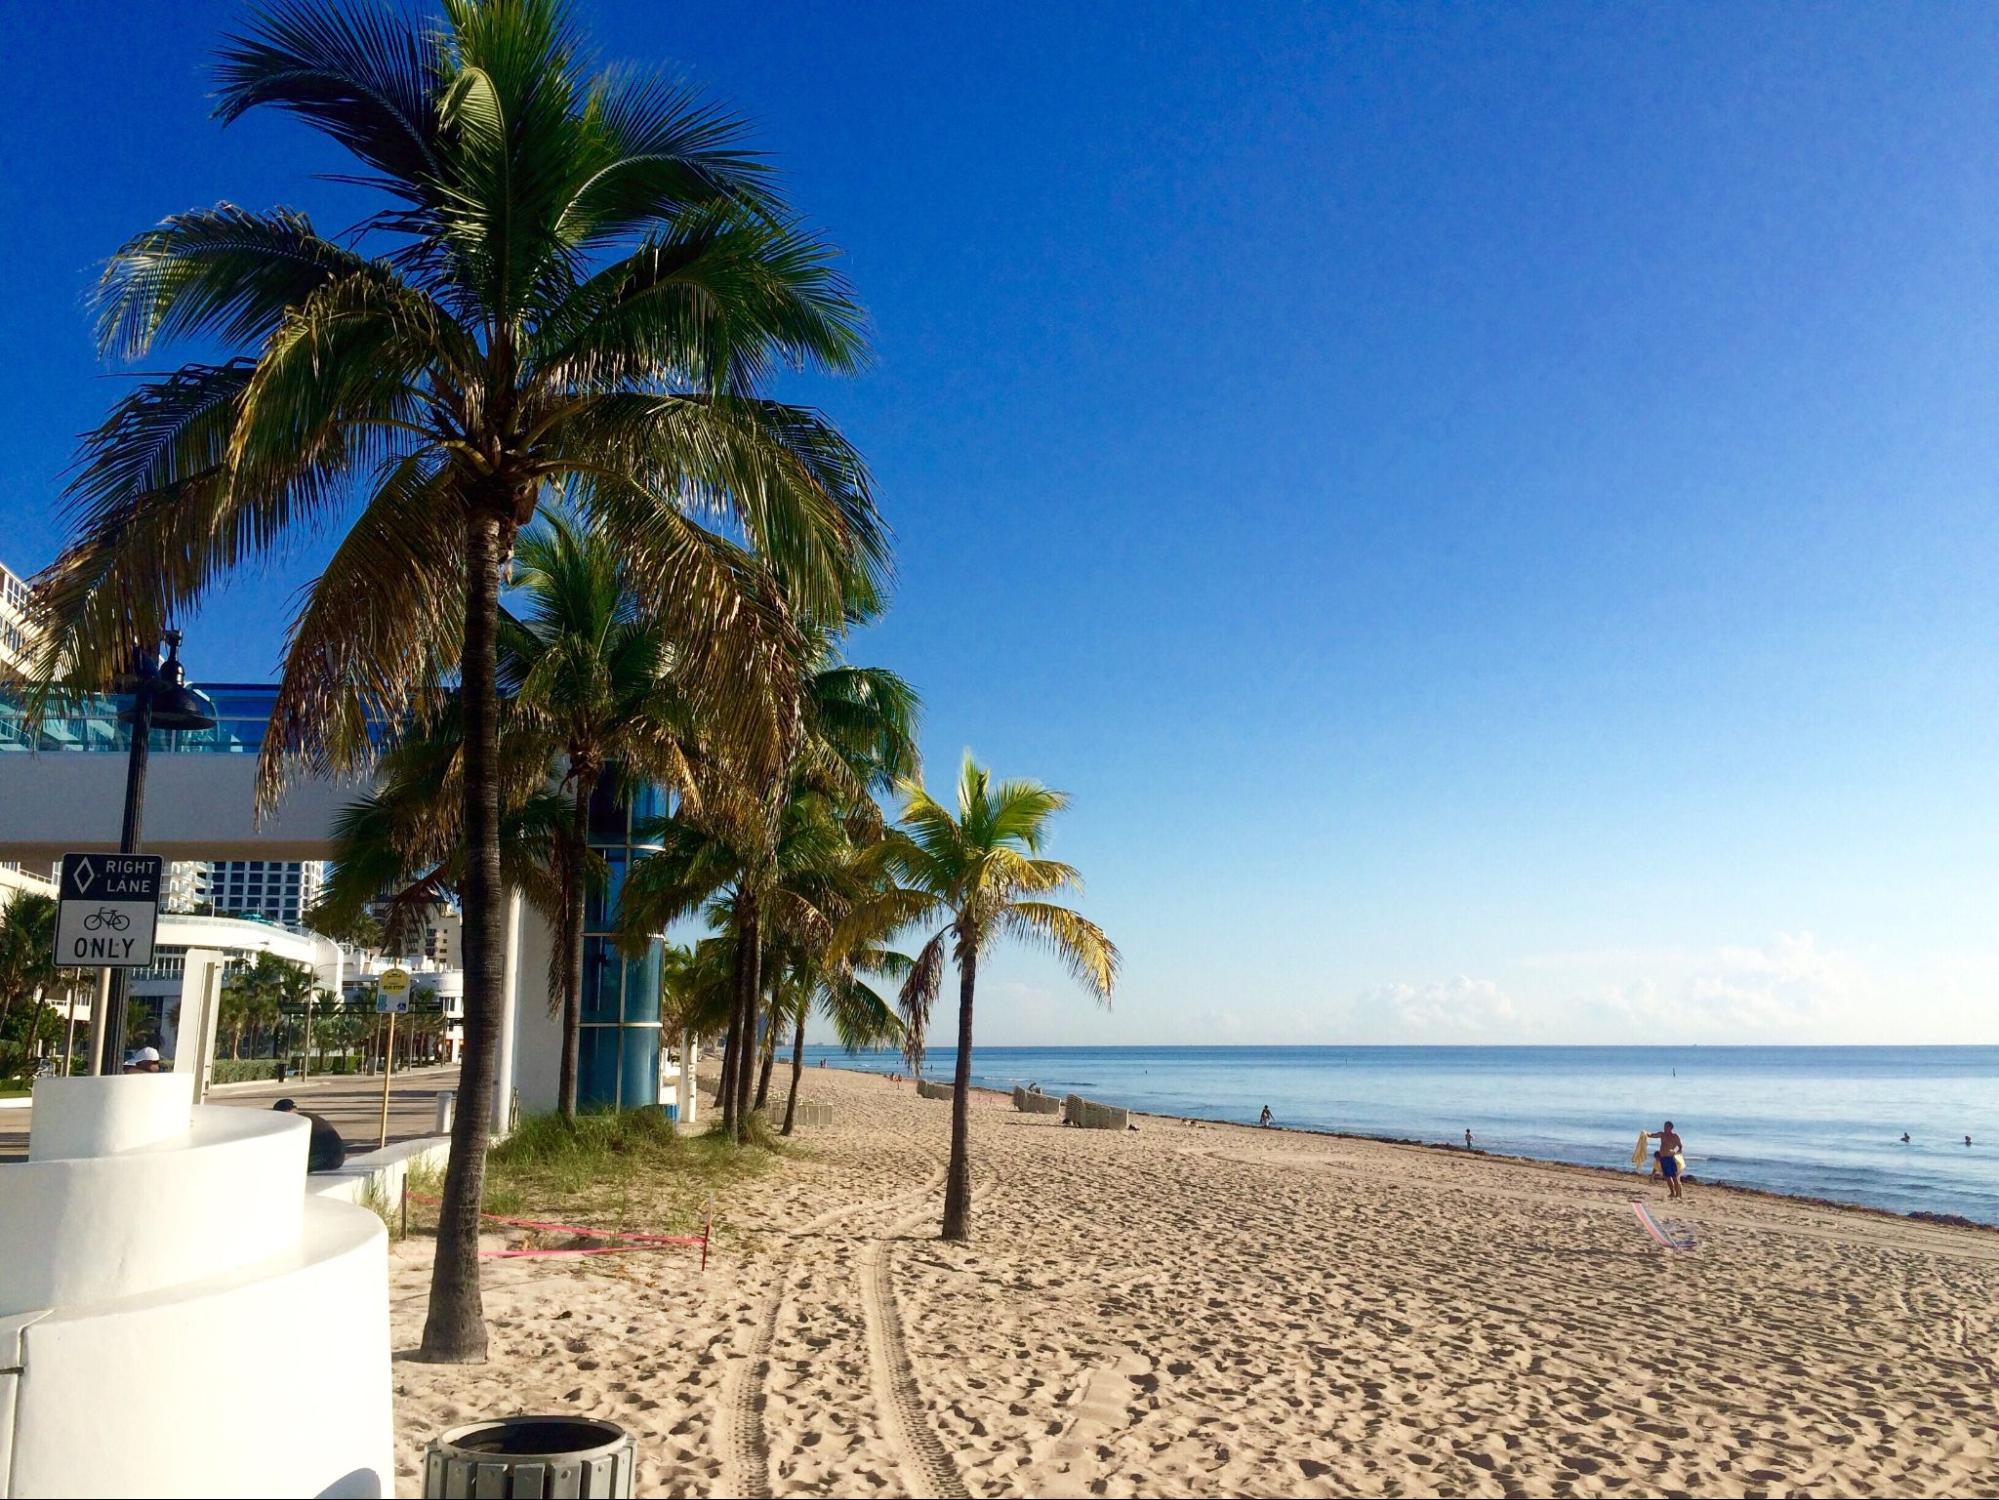 Beach view in Fort Lauderdale